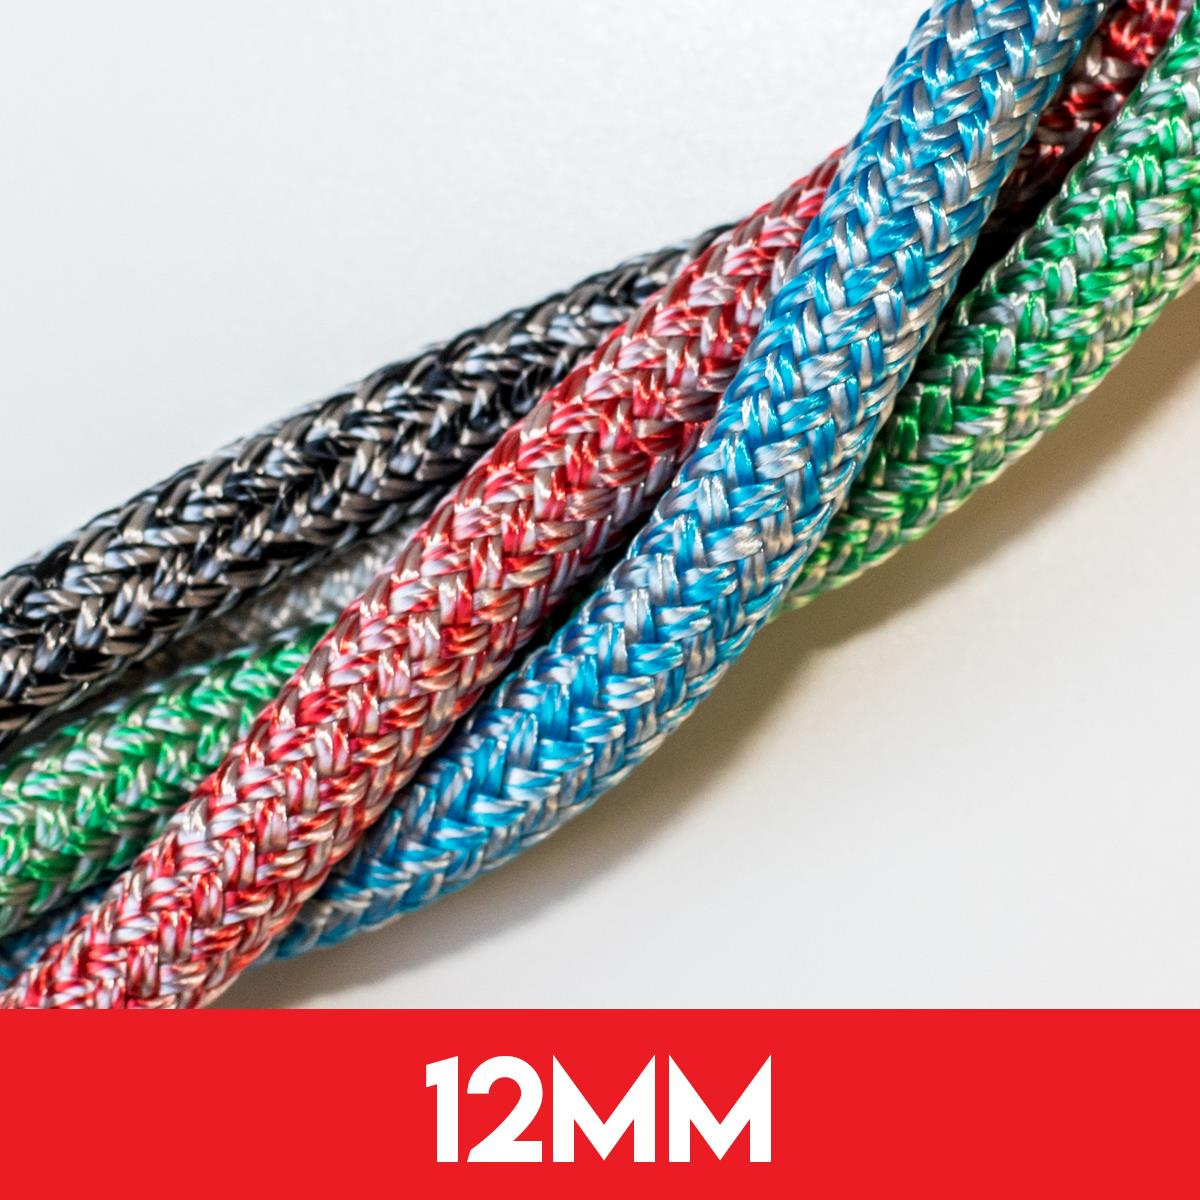 12mm Dyneema Cruise Rope